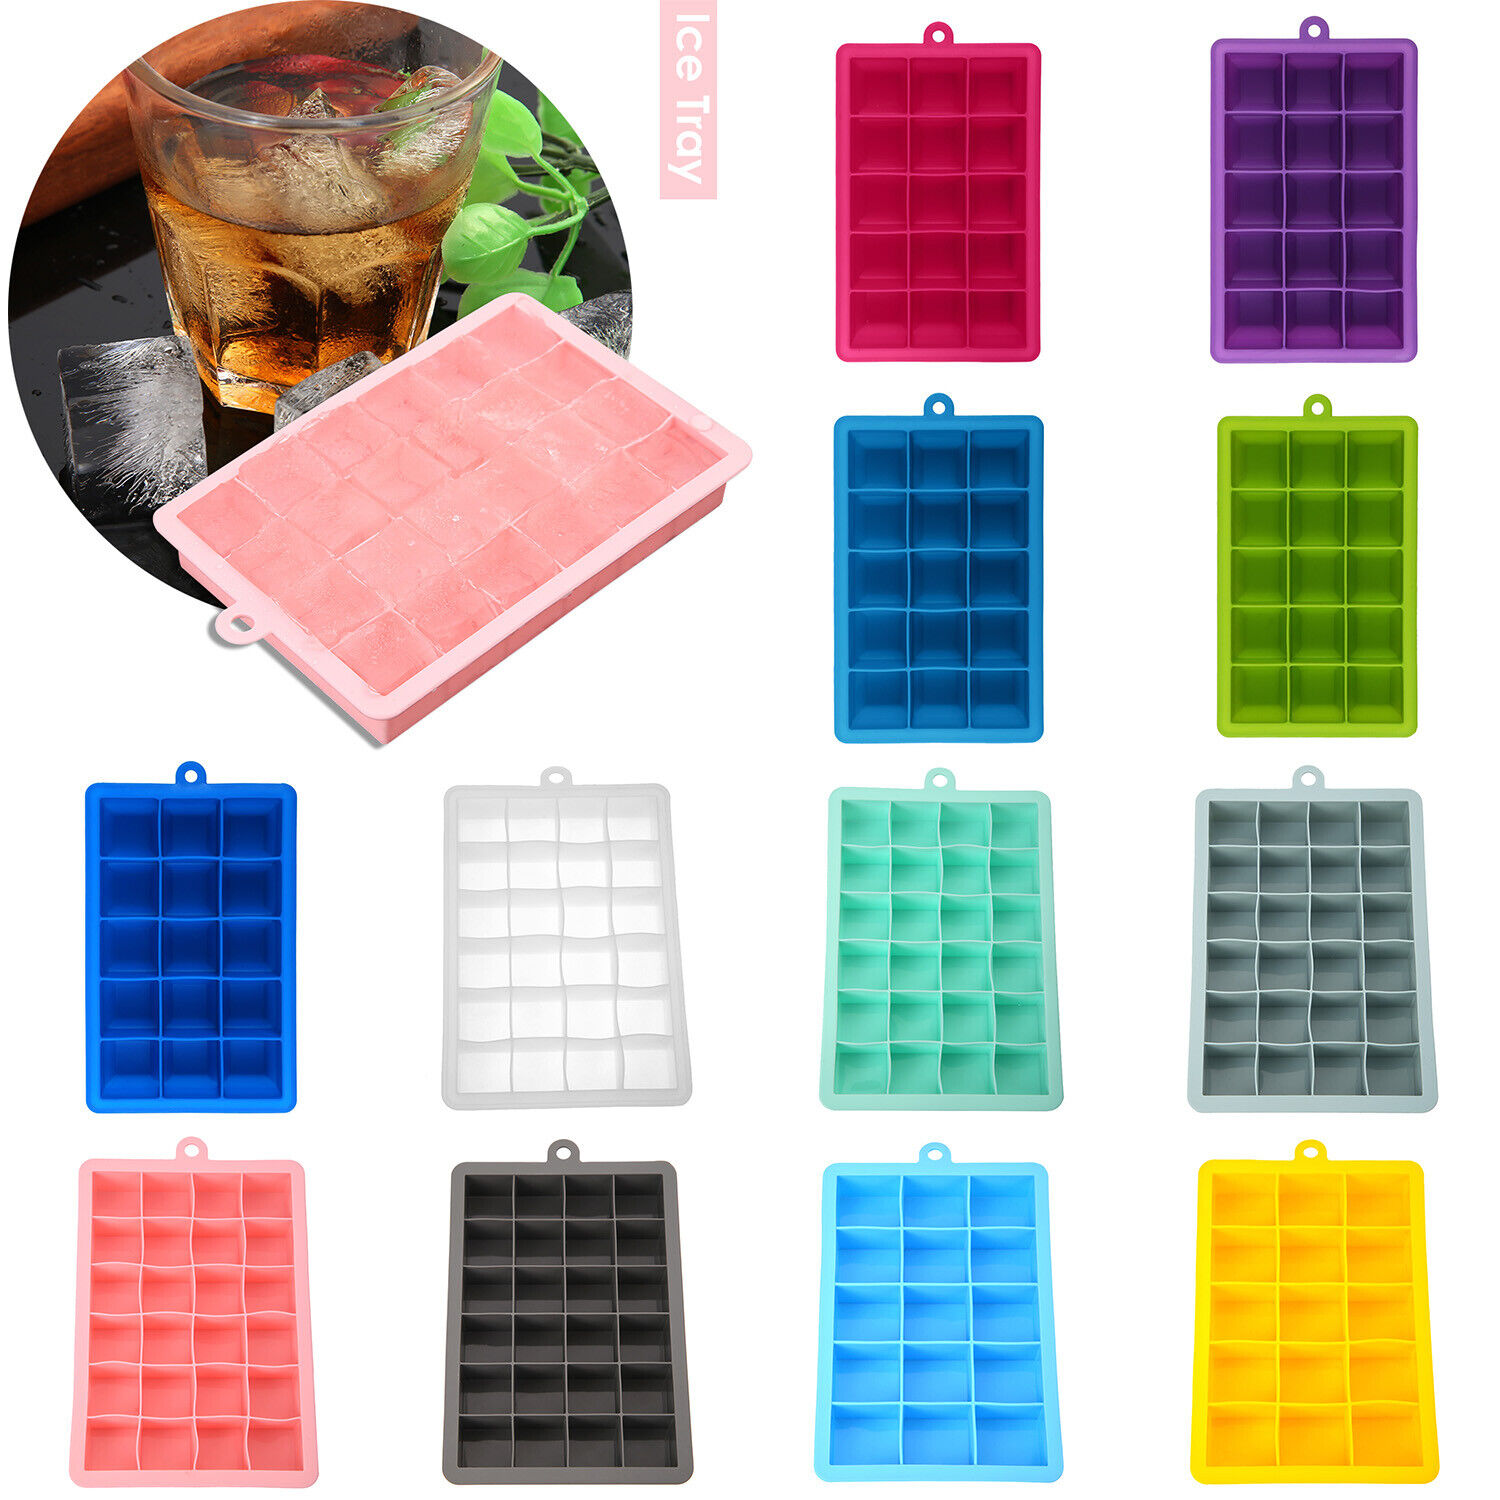 Silicone 15/24 Grids Ice Cube Maker DIY Ice Cube Mold Ice Tray Jelly Mould Tool